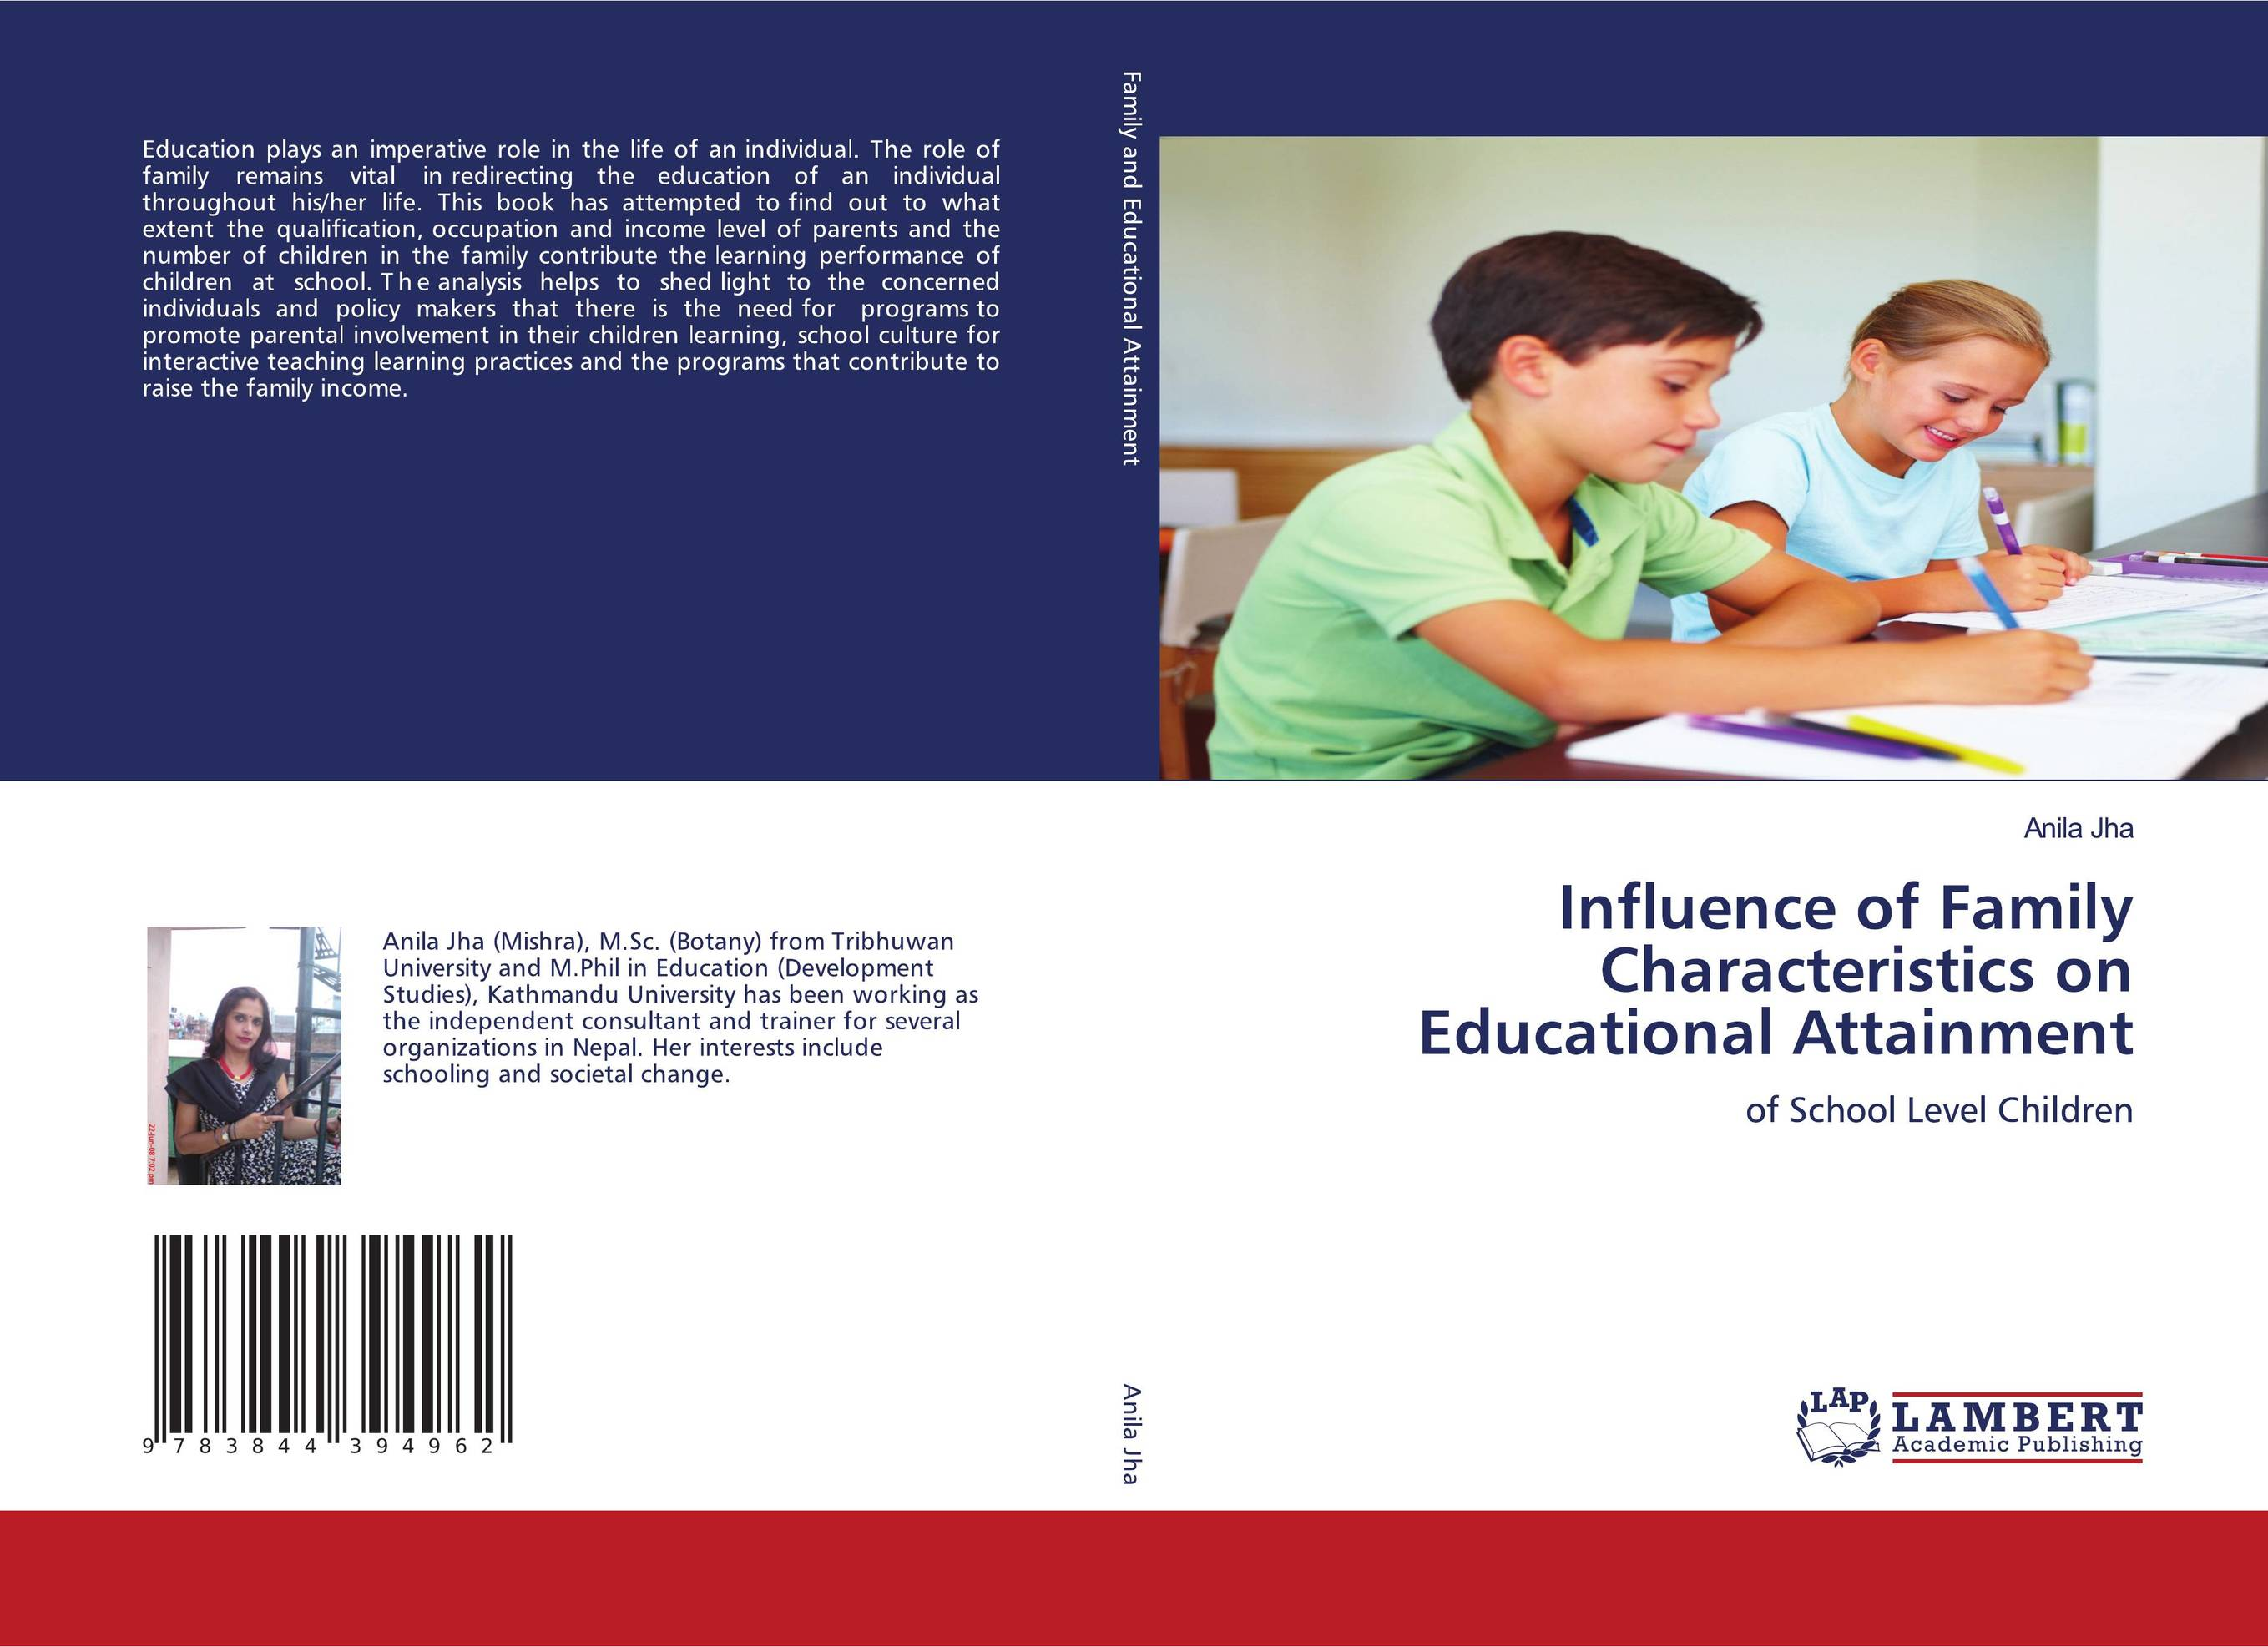 the influence of special educational needs on educational attainment at the end of key stage 4 The impact of attitudes and aspirations on educational attainment and  not exclusively about special needs  see chapters 1 to 4 of the main report key.